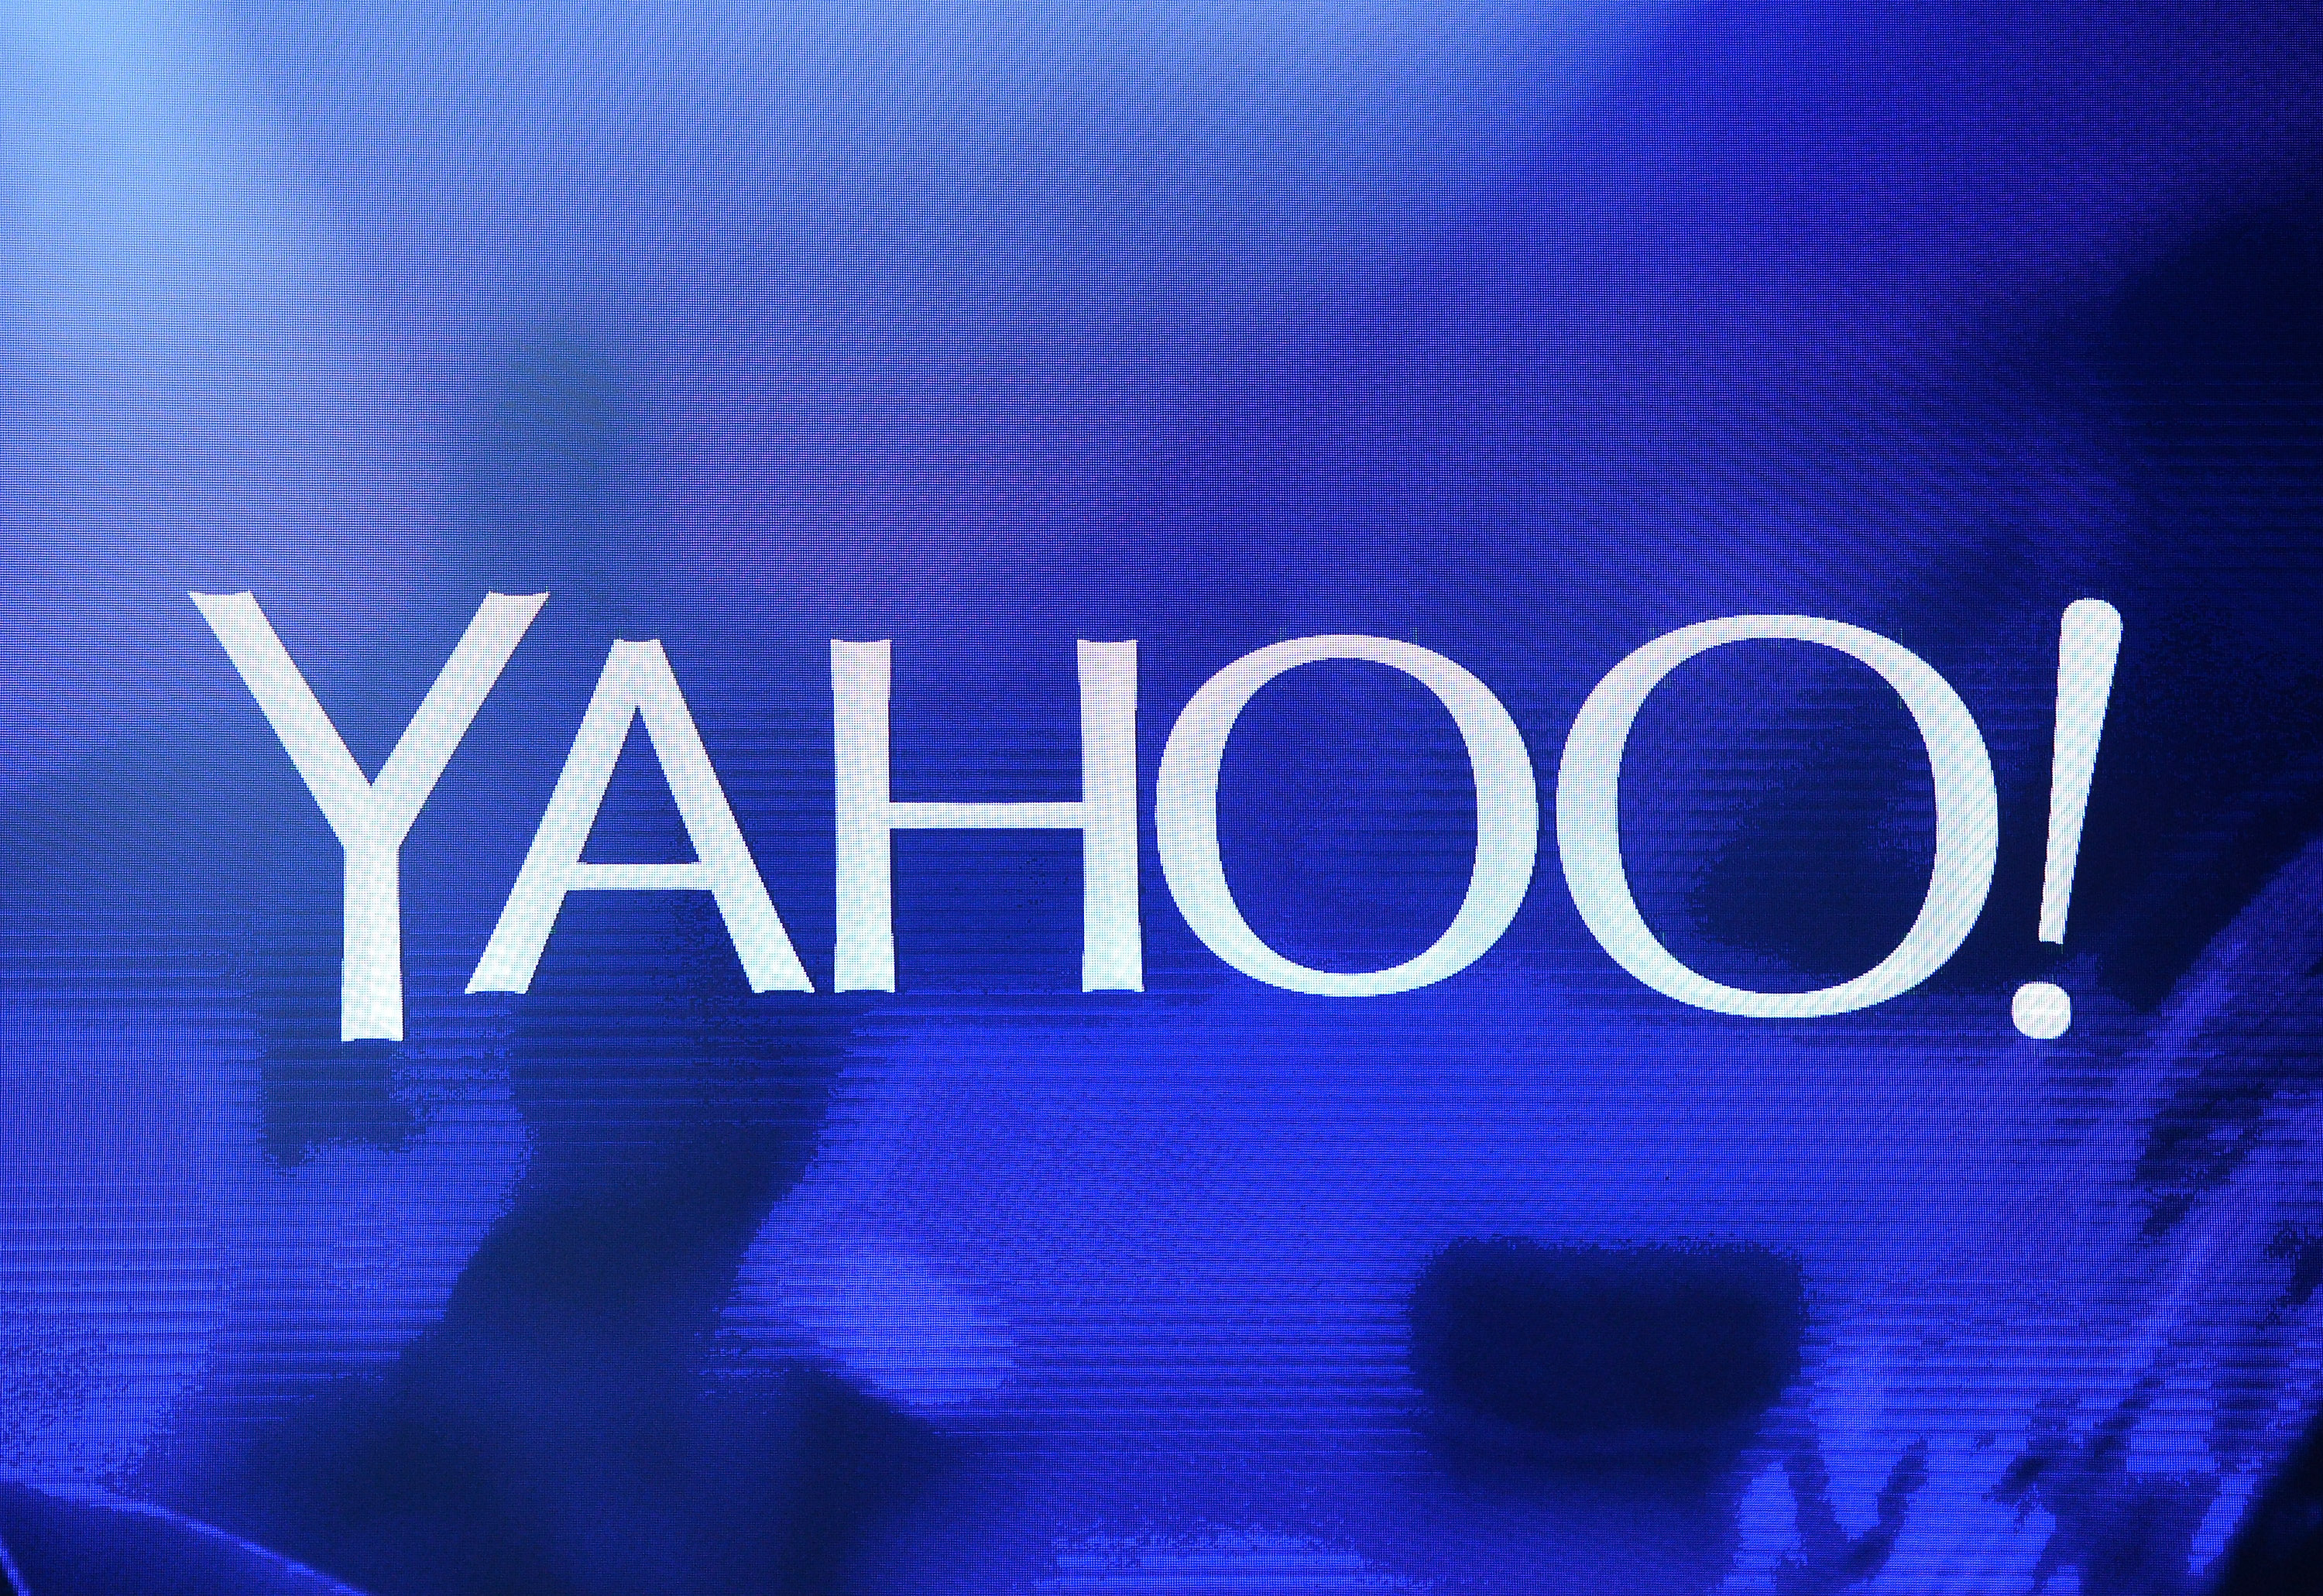 Yahoo Buys Mobile ad Platform Flurry